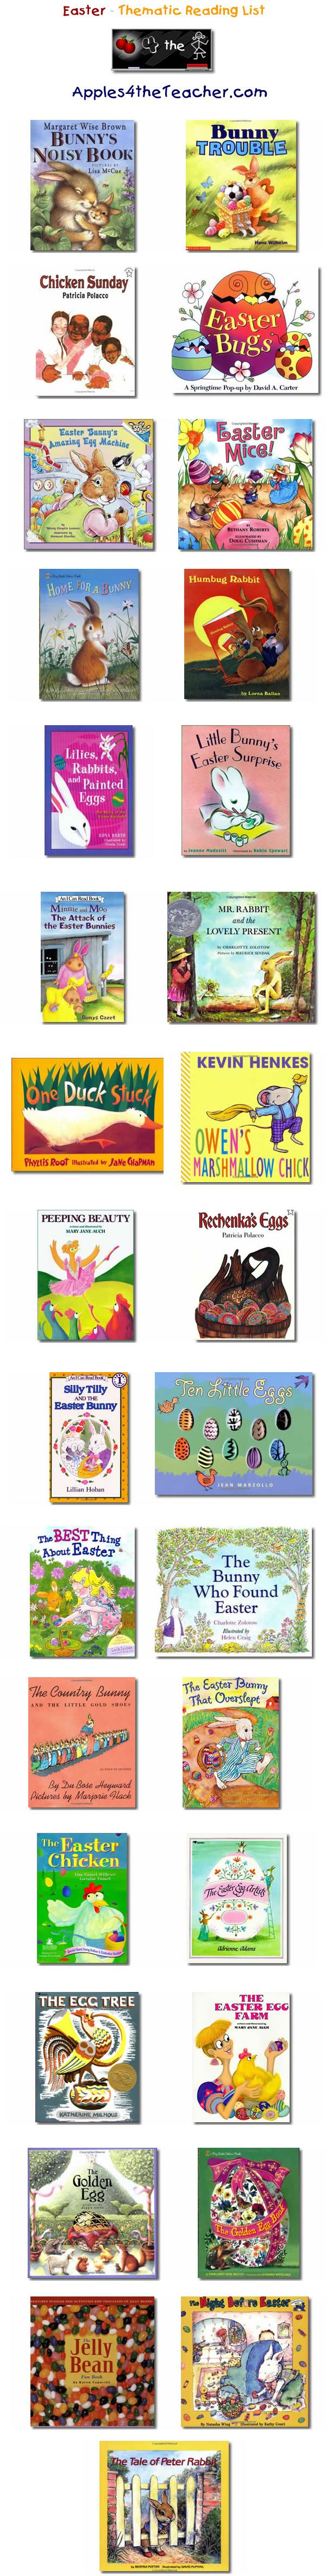 Suggested thematic reading list for Easter - Easter books for kids.   http://www.apples4theteacher.com/holidays/easter-fun/kids-books/